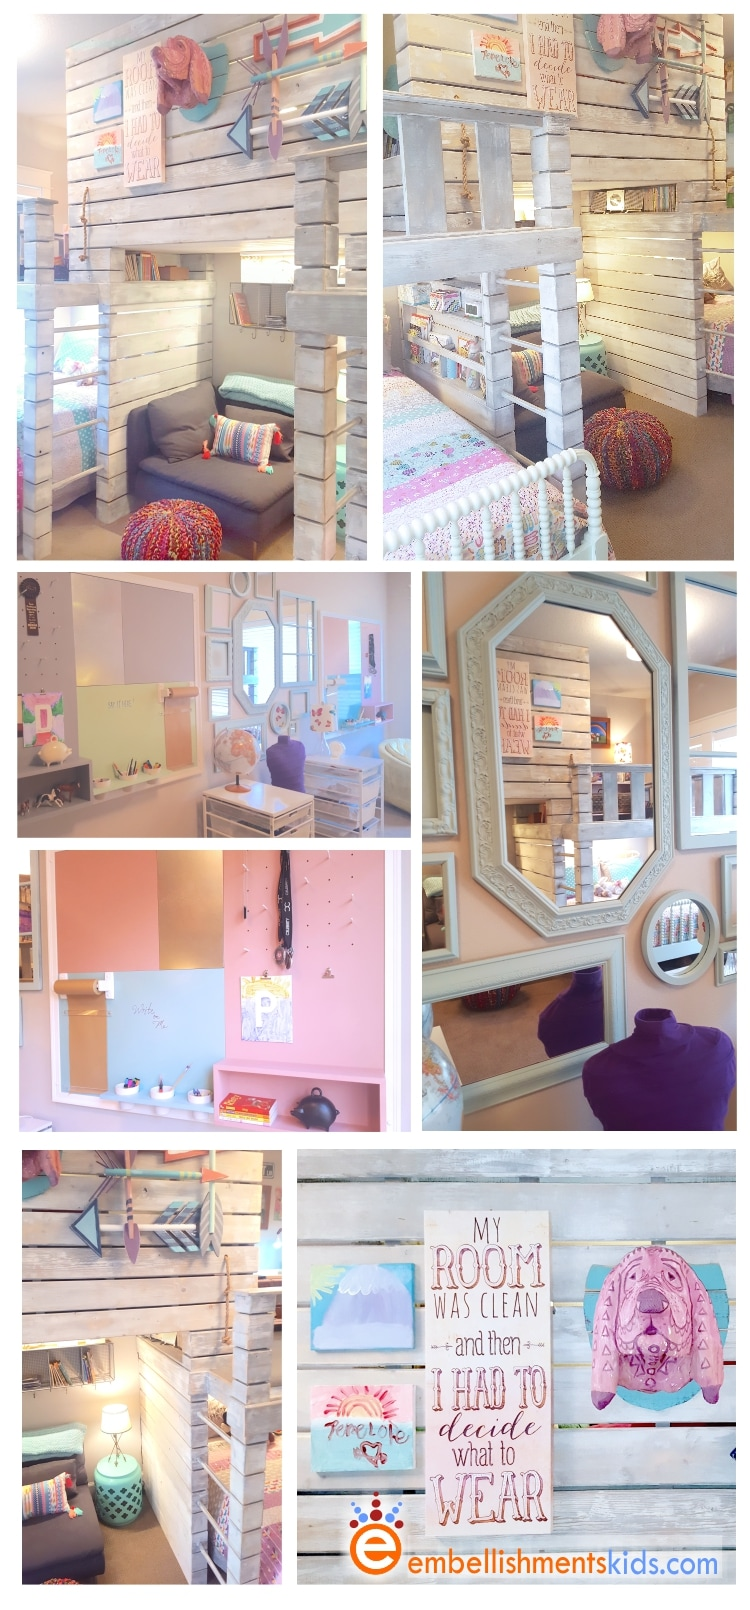 Shared bedroom for twin girls.  Loft, fort, reading nook with room for two double beds by Aaron Christensen Embellishmentskids.com